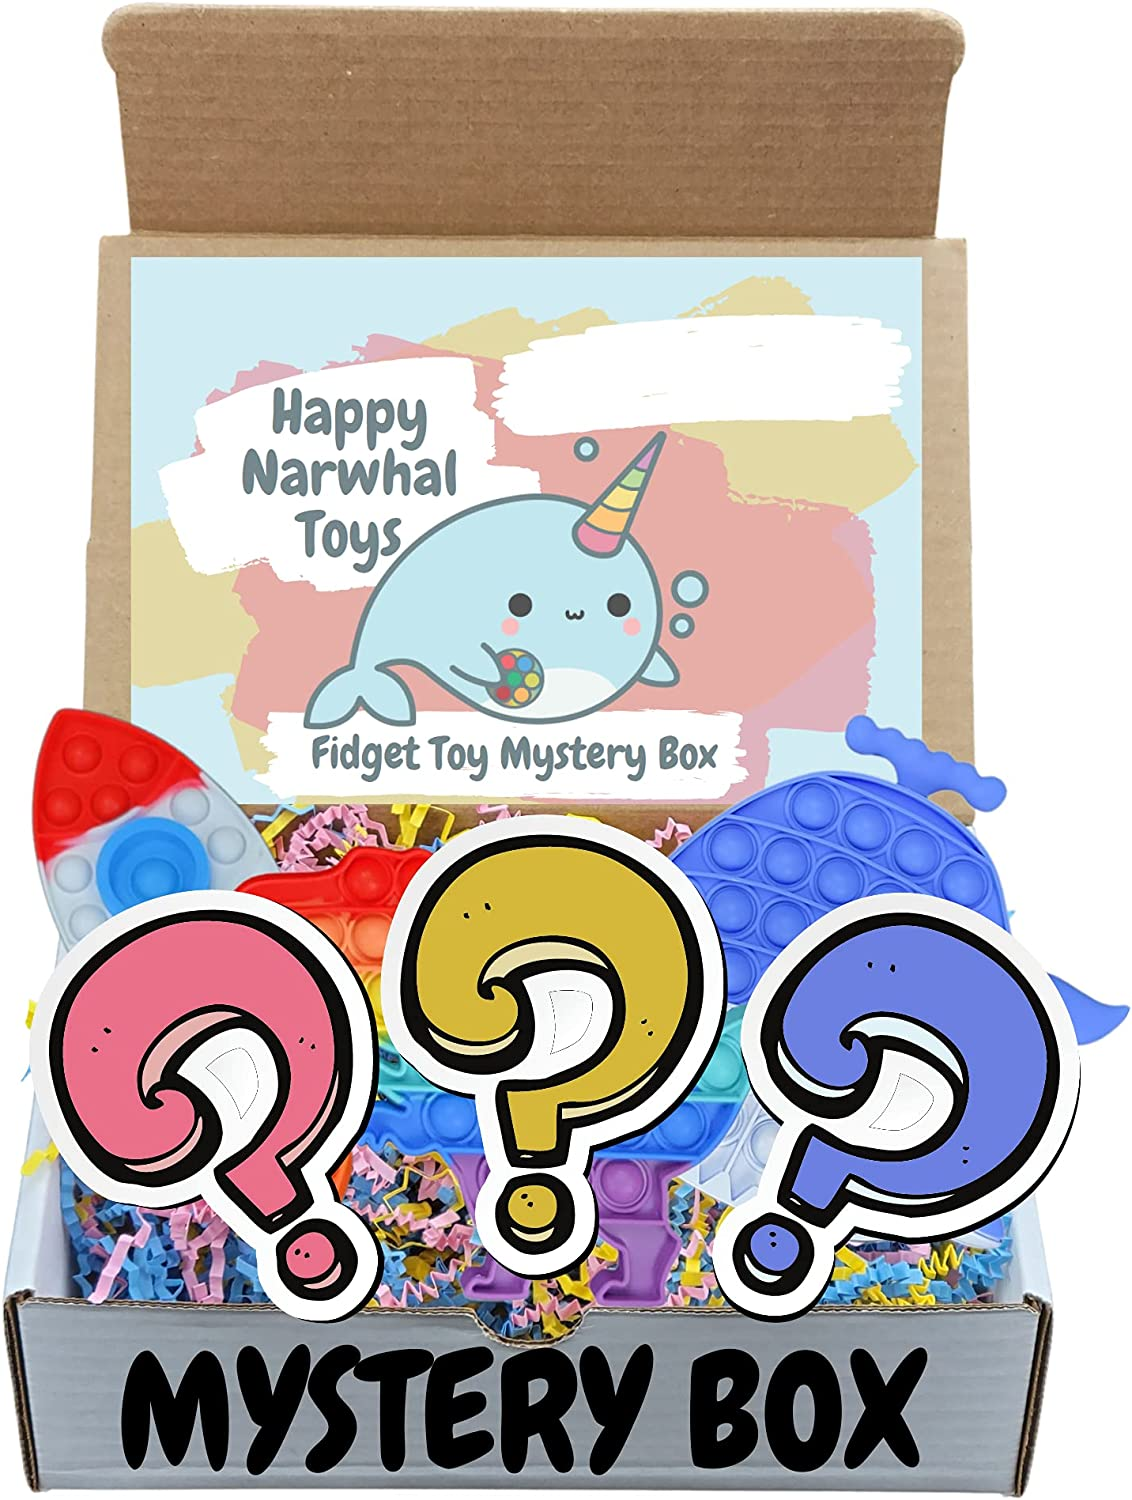 Happy Narwhal Toys Fidget Toy Mystery Surprise Blind Box (3 Toys per Box) | Push Pop Dimple Sensory Fidget Toys Regular Size | Surprise Gift in Every Box | Variety Blind Box